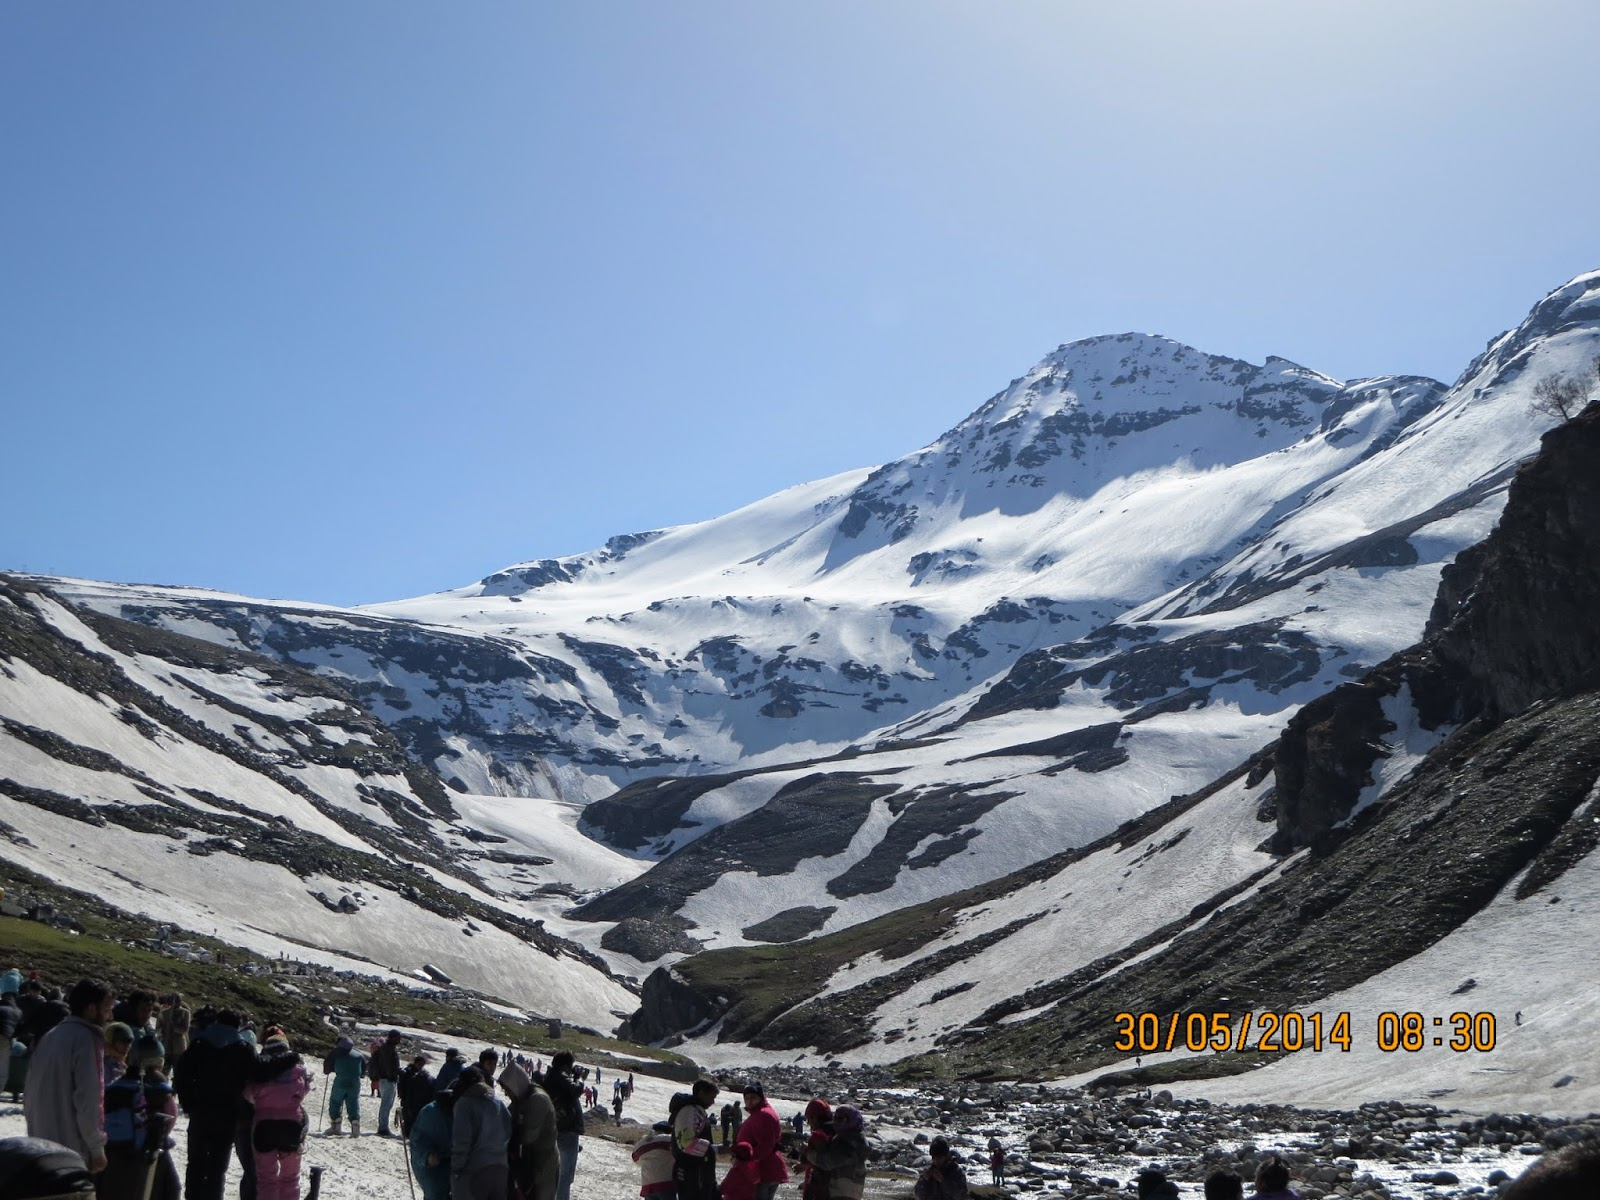 Manali - Snow point near Rohtang Pass